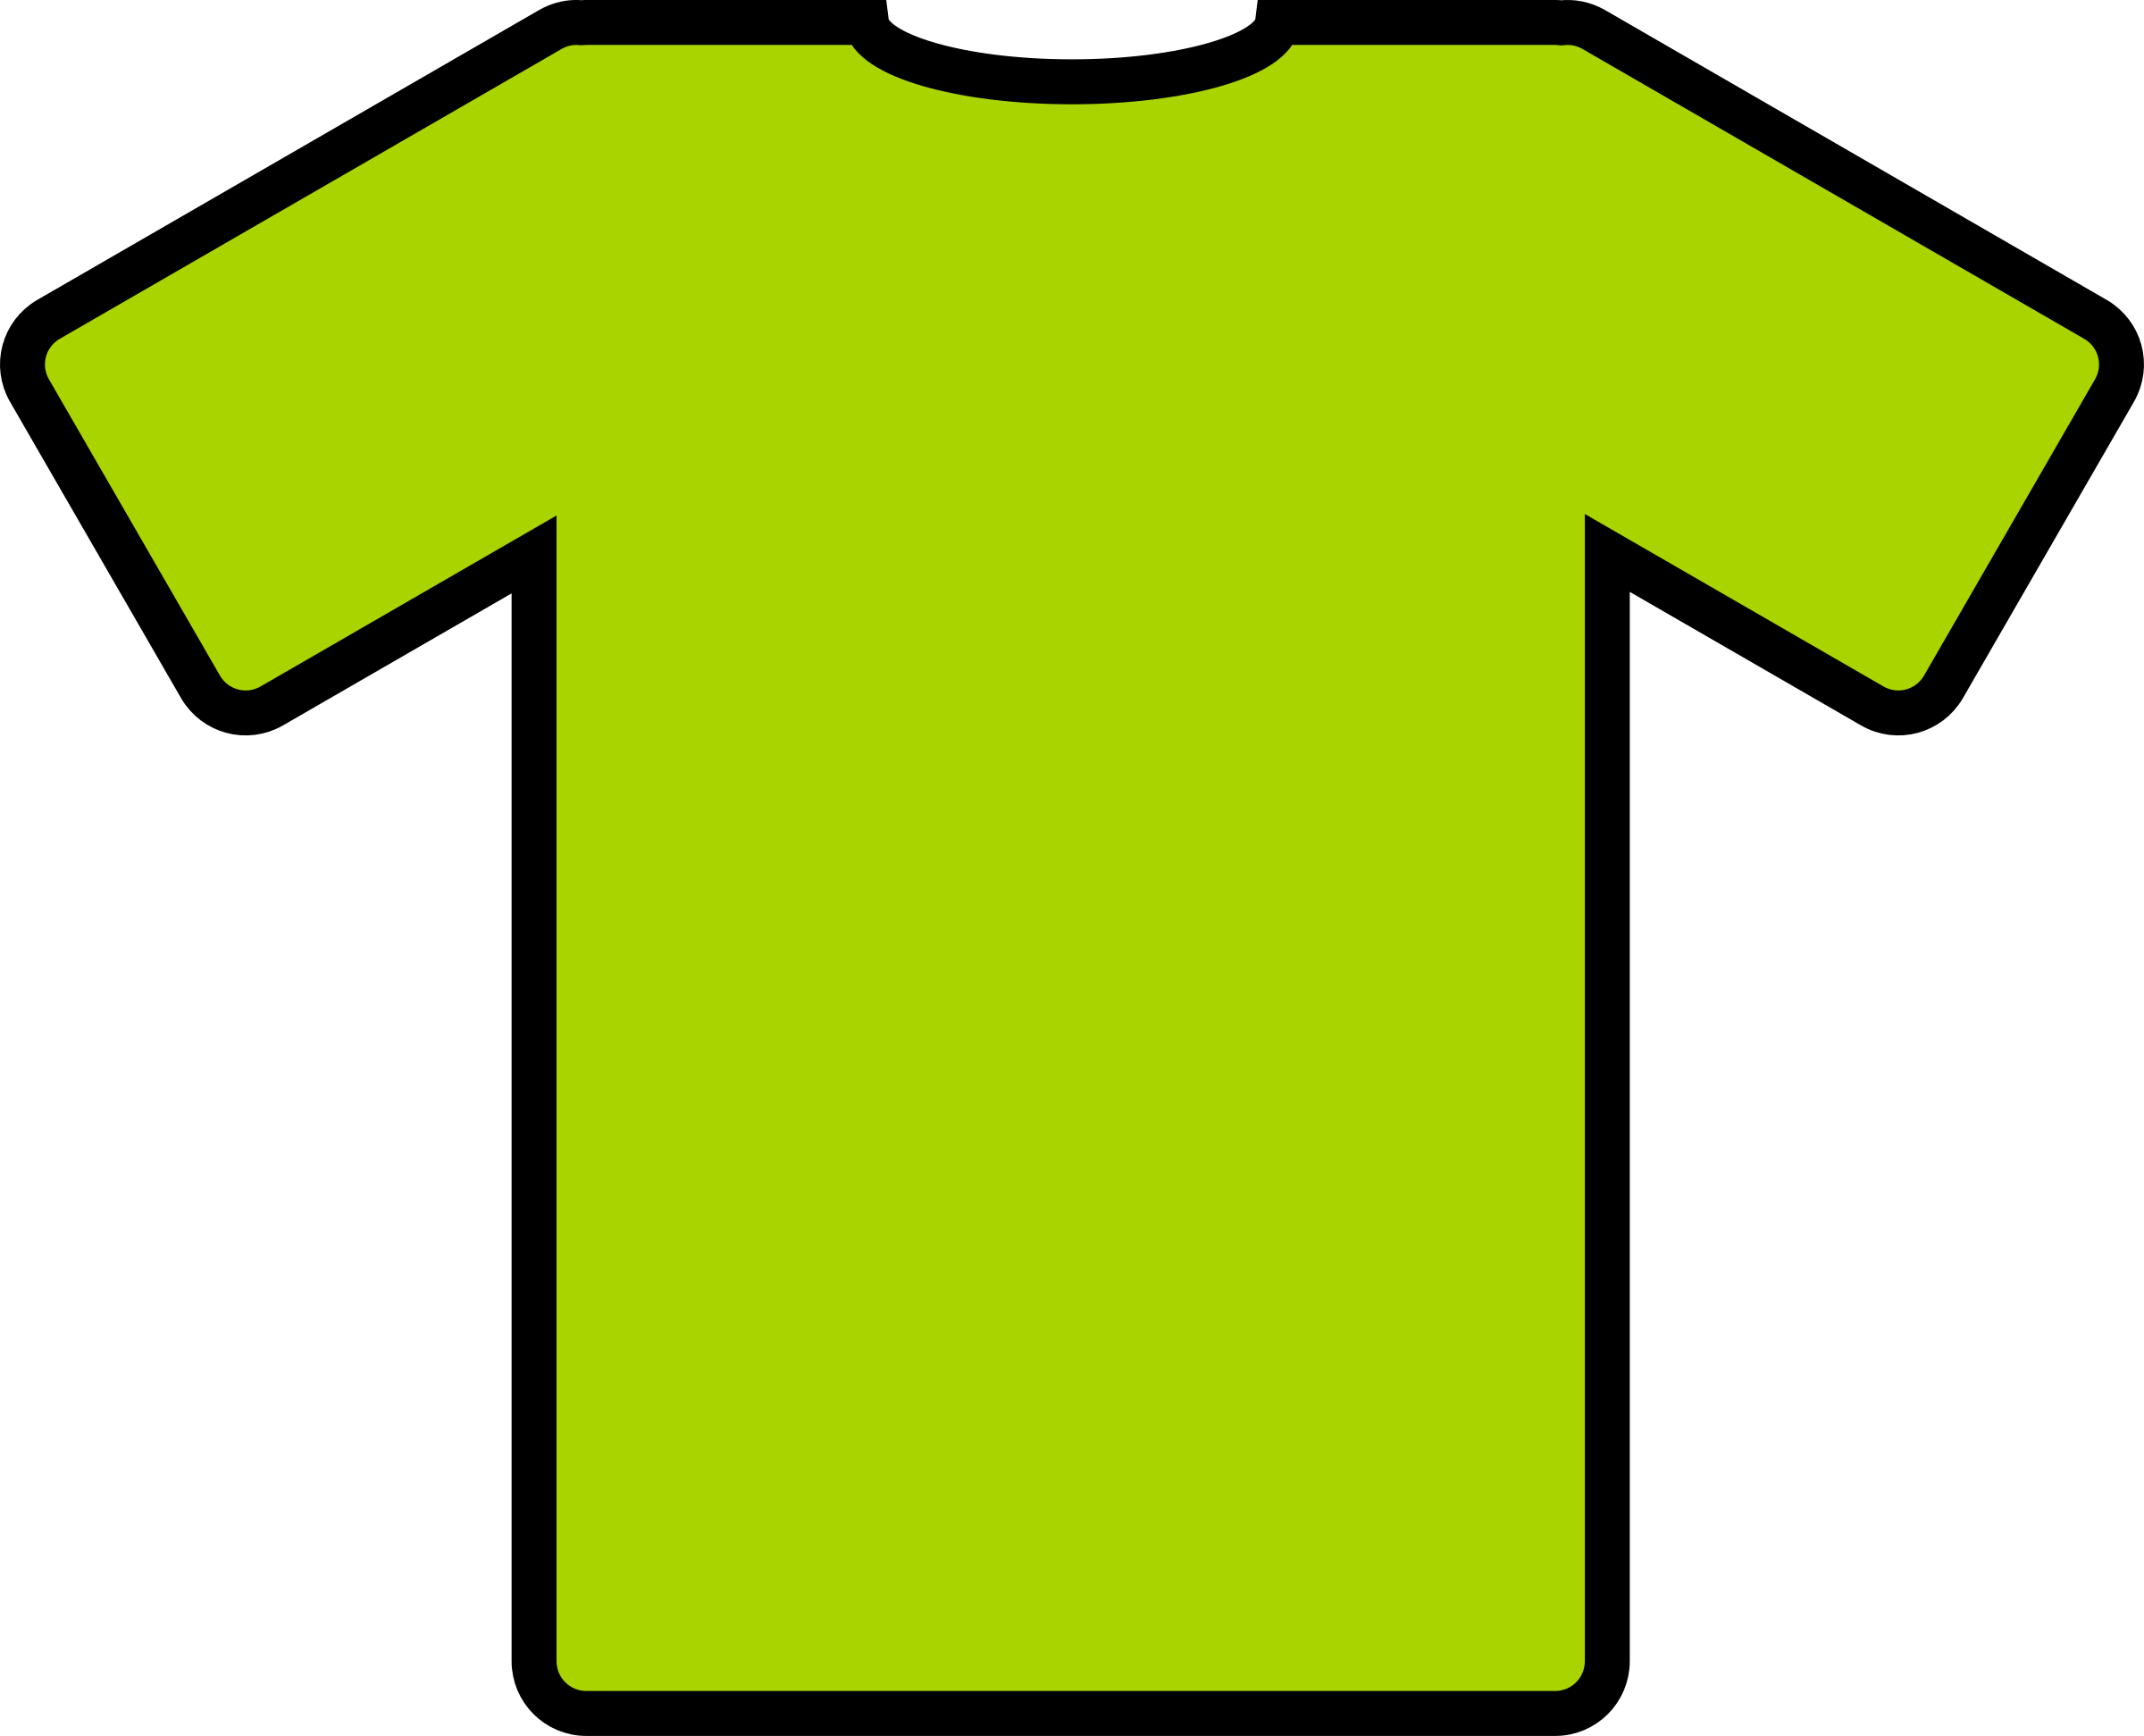 green t-shirt by ryanlerch